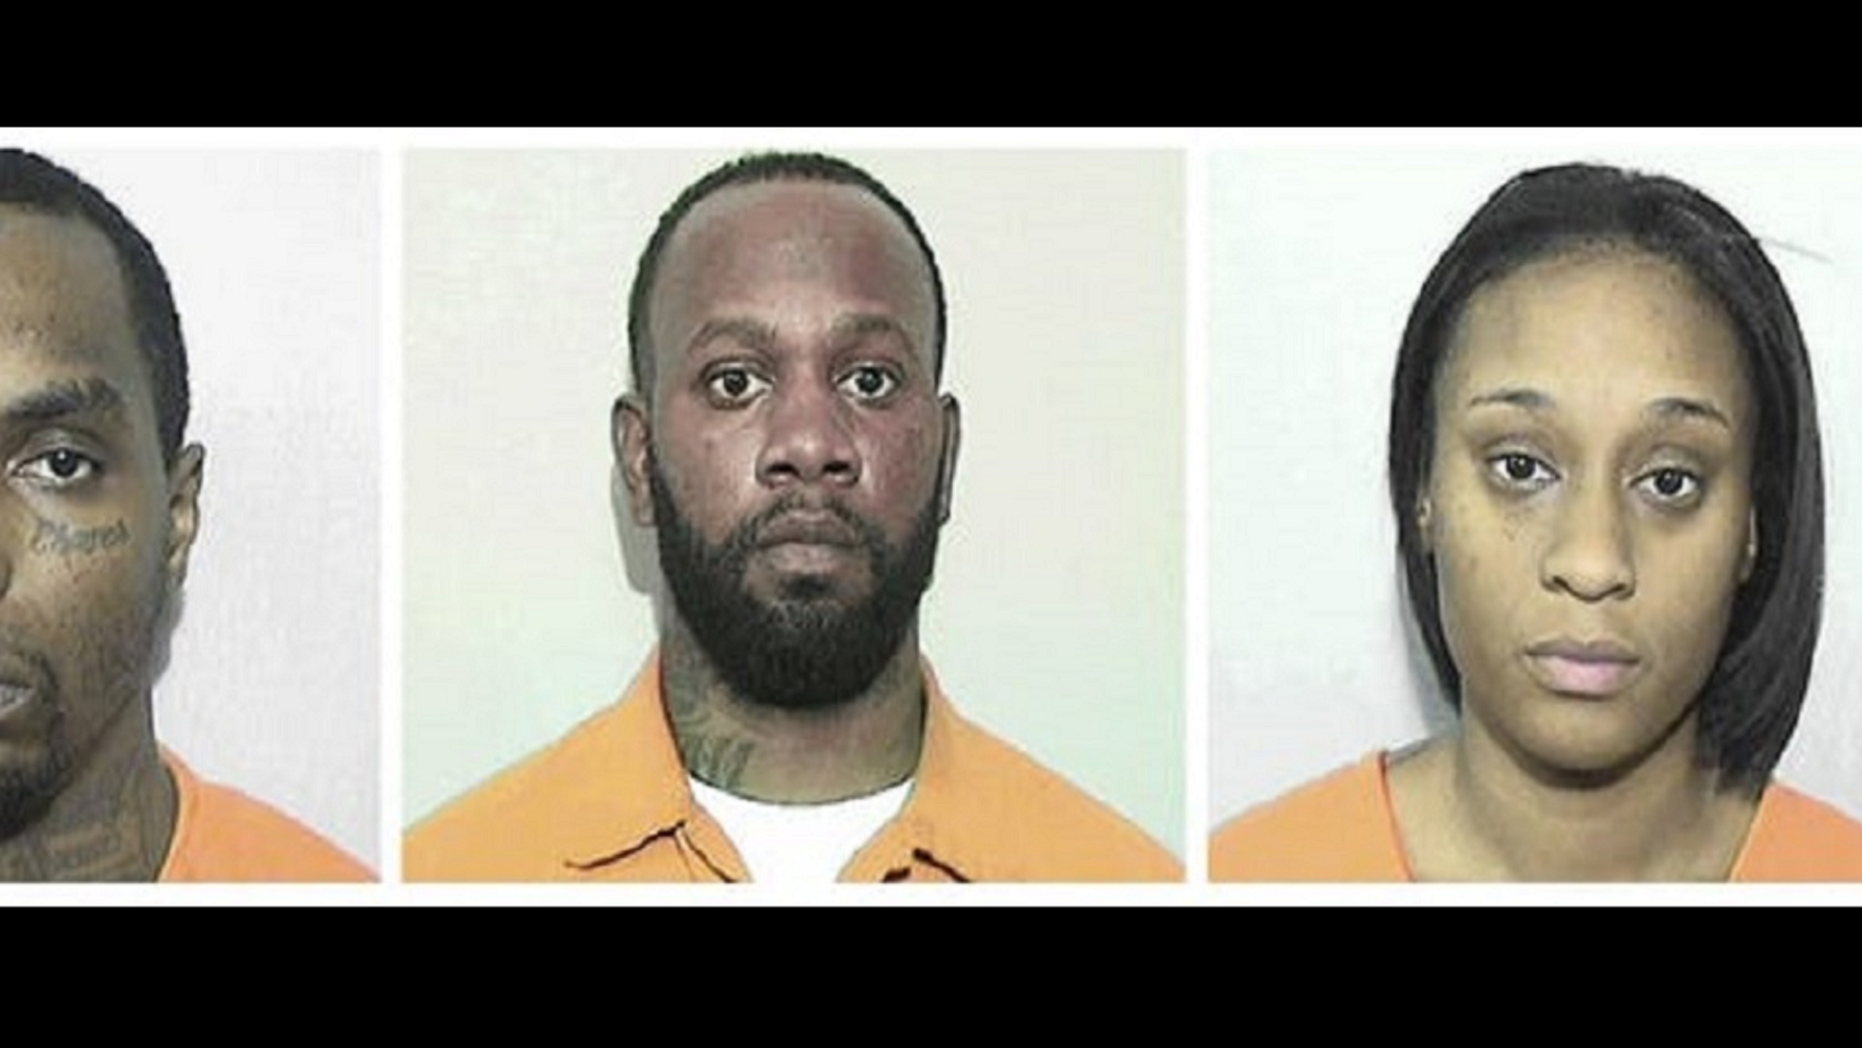 Darrius Lonzo Lewis, left, Anthony Ray Robinson, Barbara Nykitta Wilson were arrested on charges relating to the attempted shipment of fentanyl.